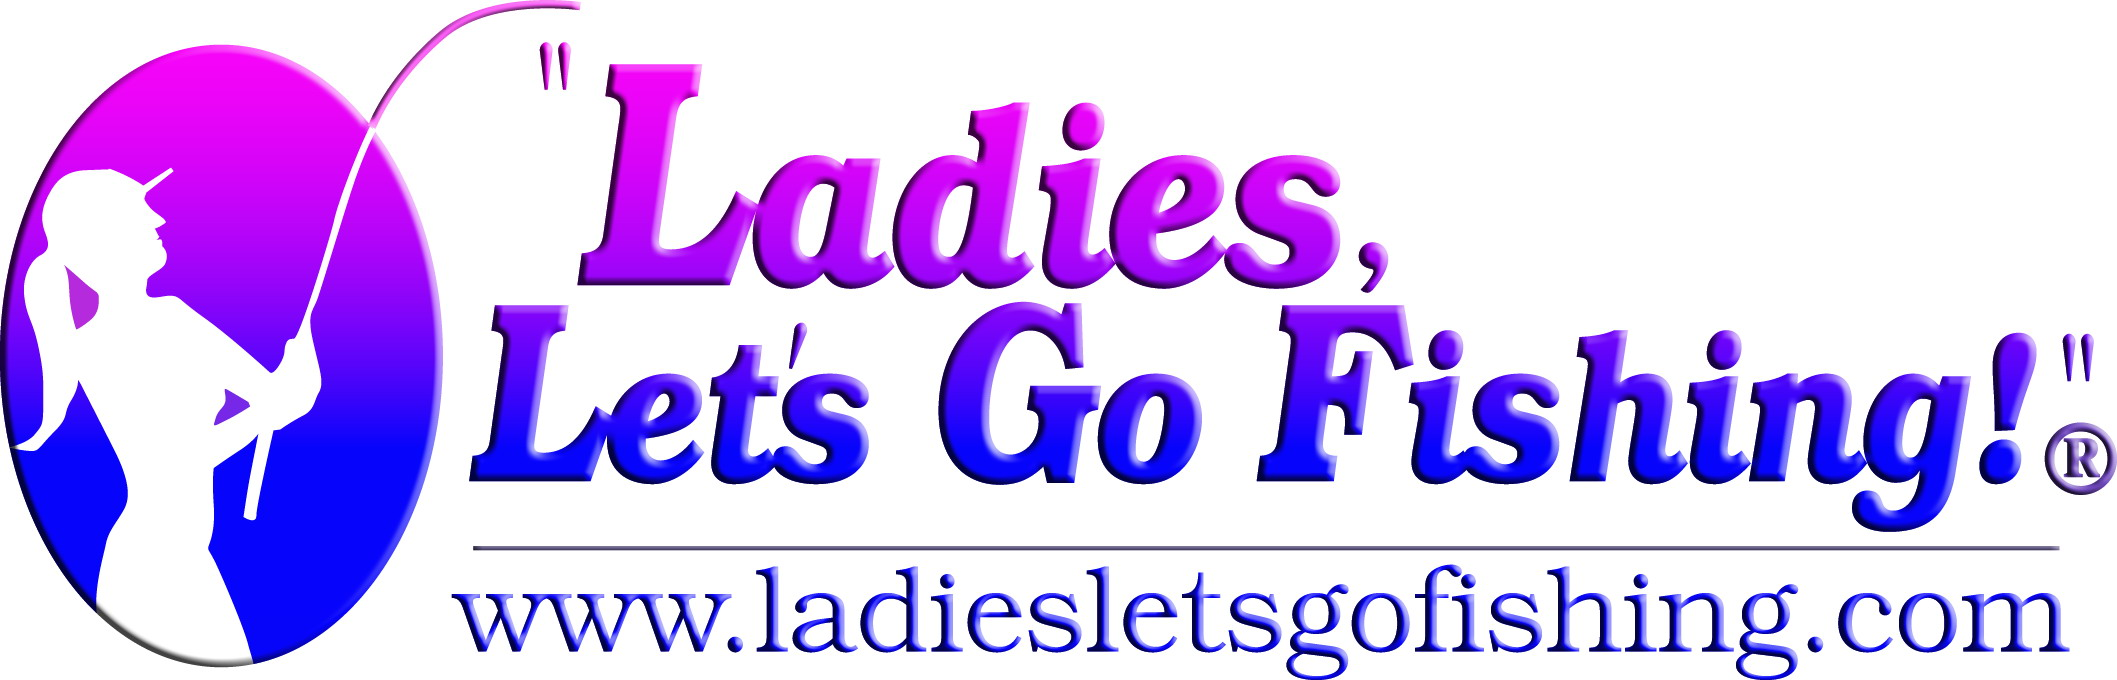 Ladies lets go fishing in south florida for Lets go fishing